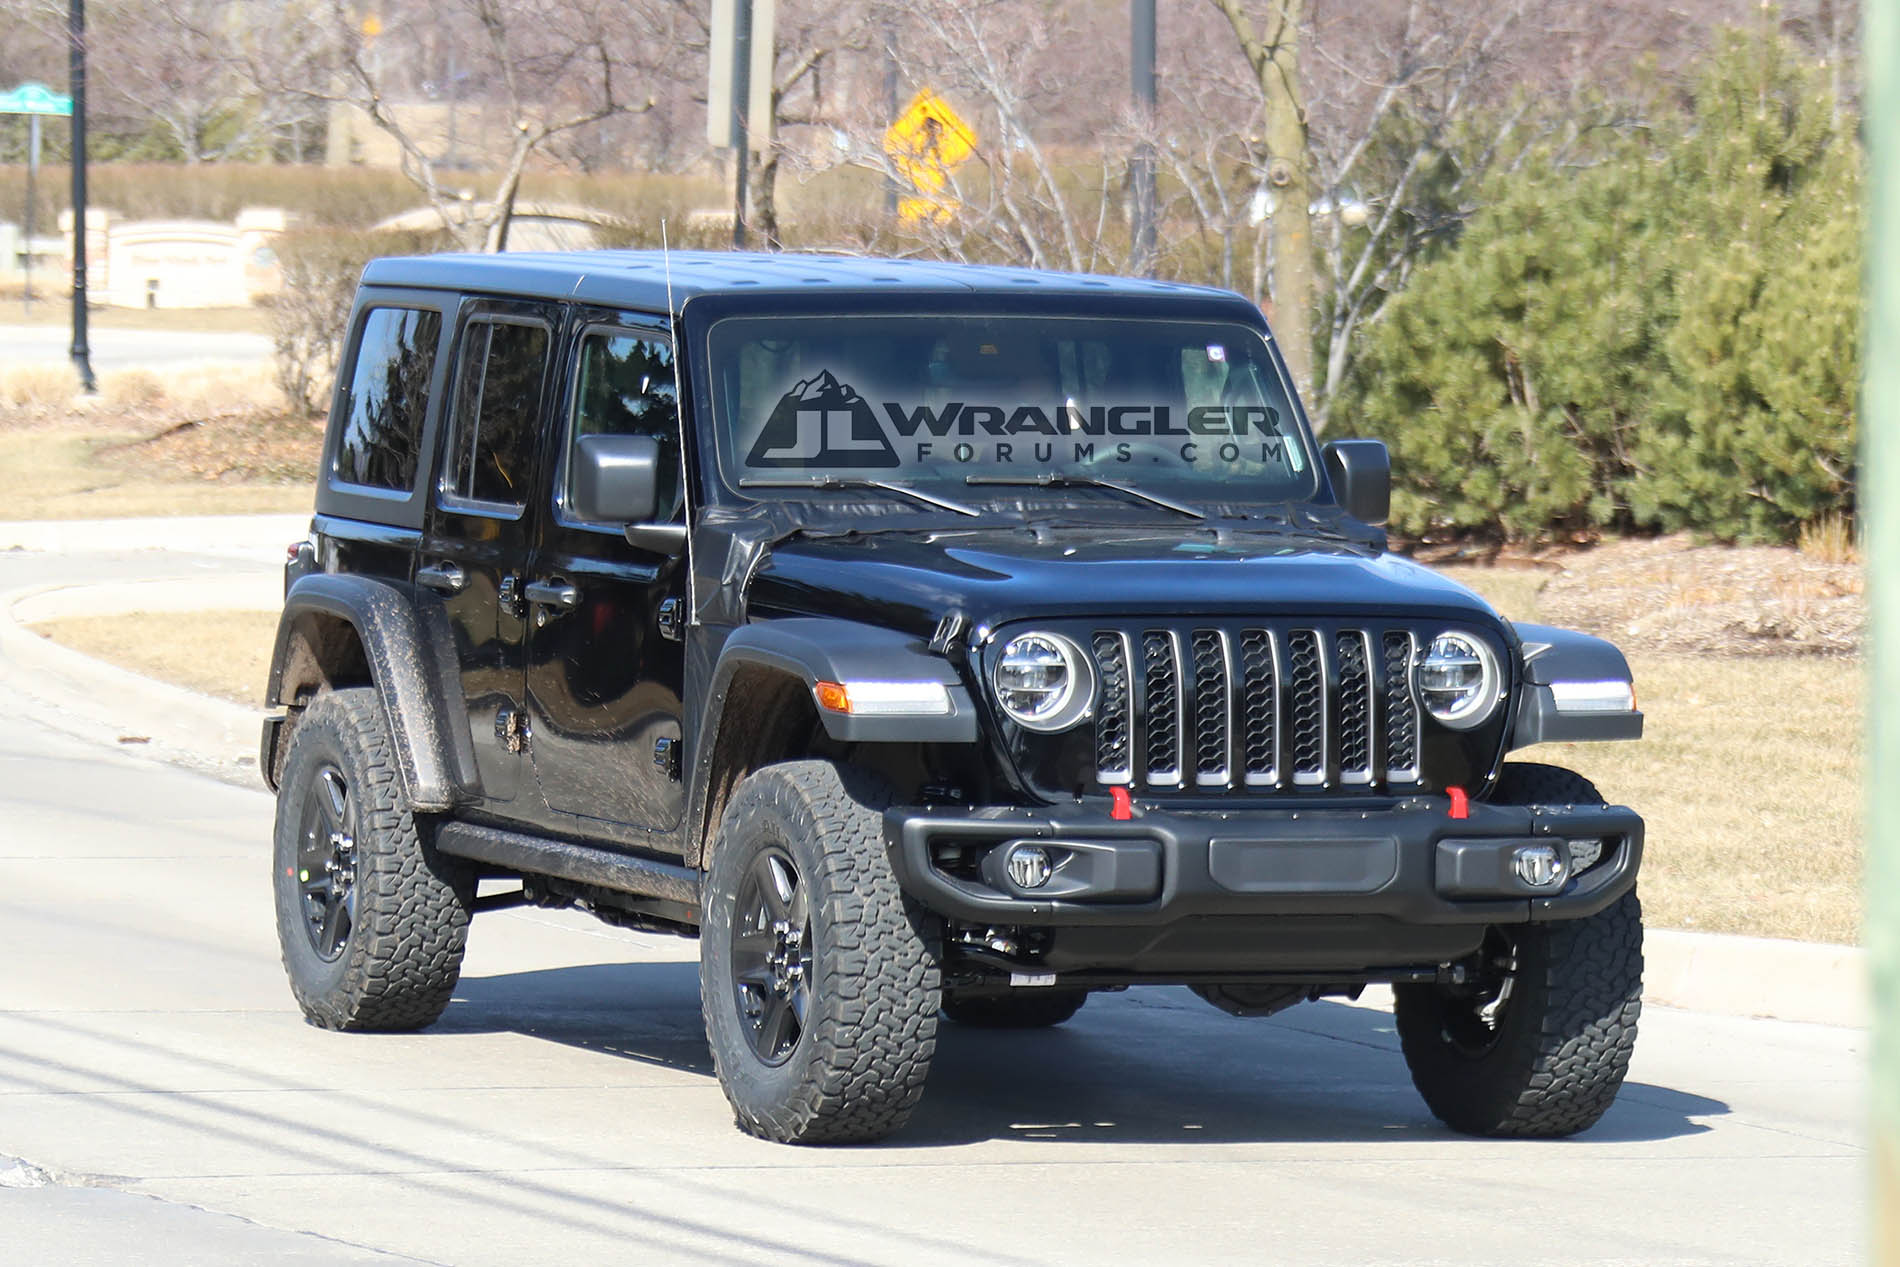 First sighting of 2020 Jeep JL Wrangler PHEV Plug-In Hybrid